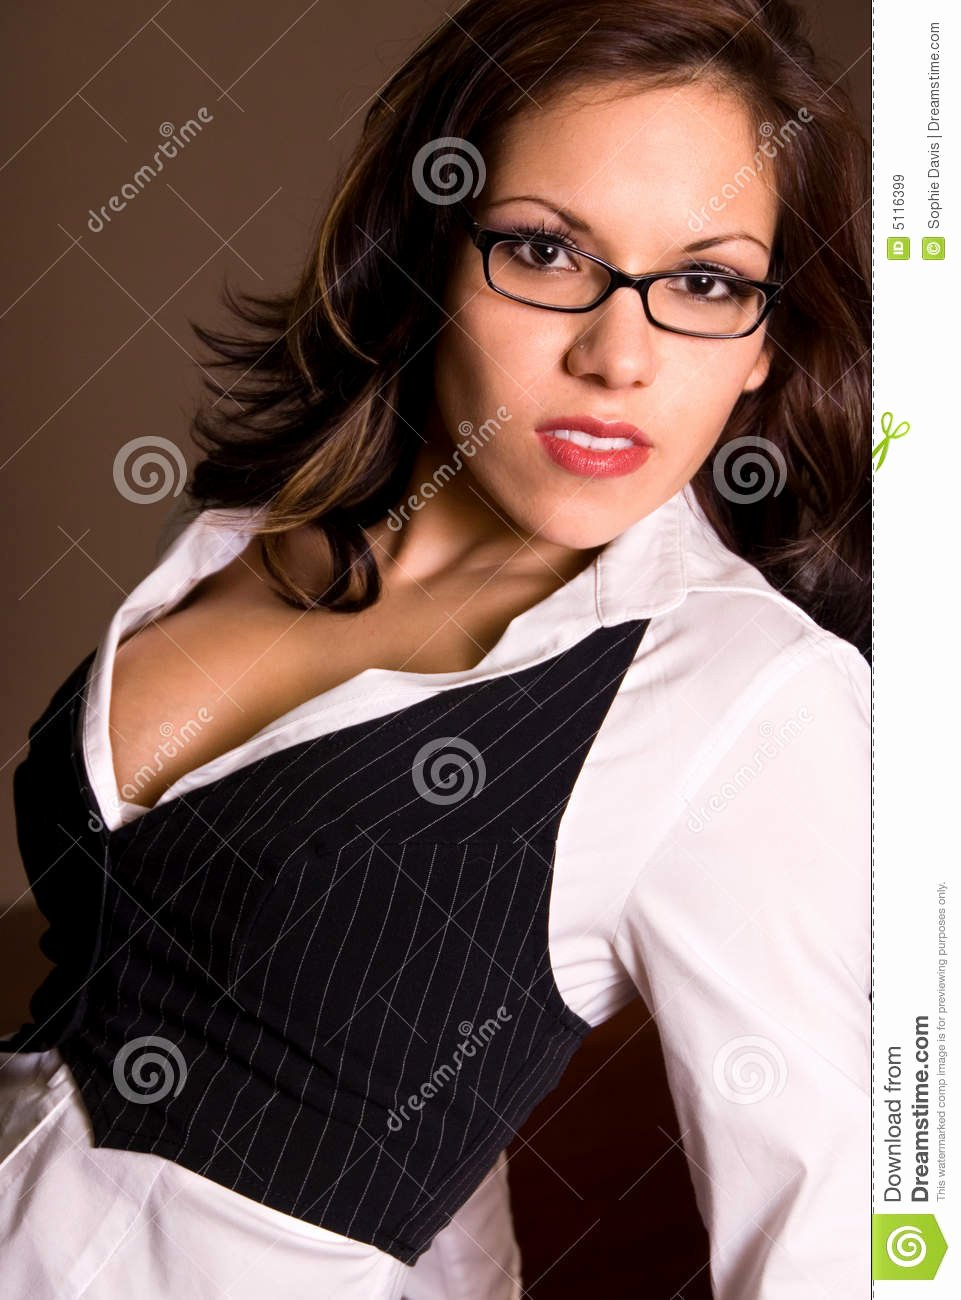 Free Sexy Women Photos Fresh Hot Business Woman Royalty Free Stock Image